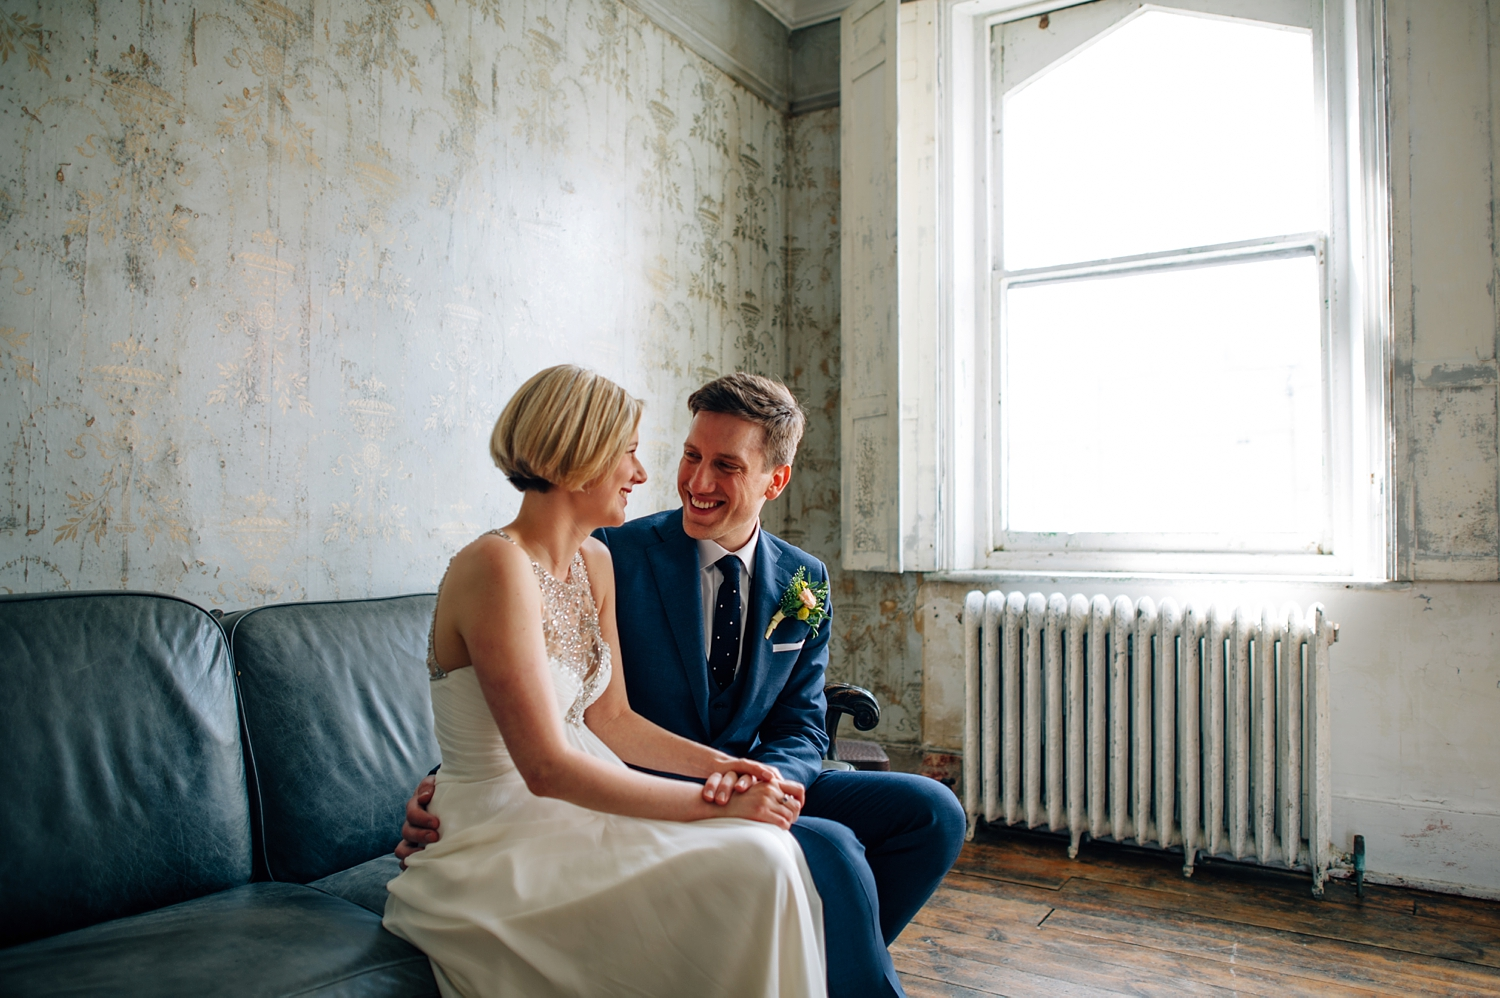 0117-lisa-devine-alternative-wedding-photography-london-hackney-dalston-london-photography-townhall-hotel.JPG